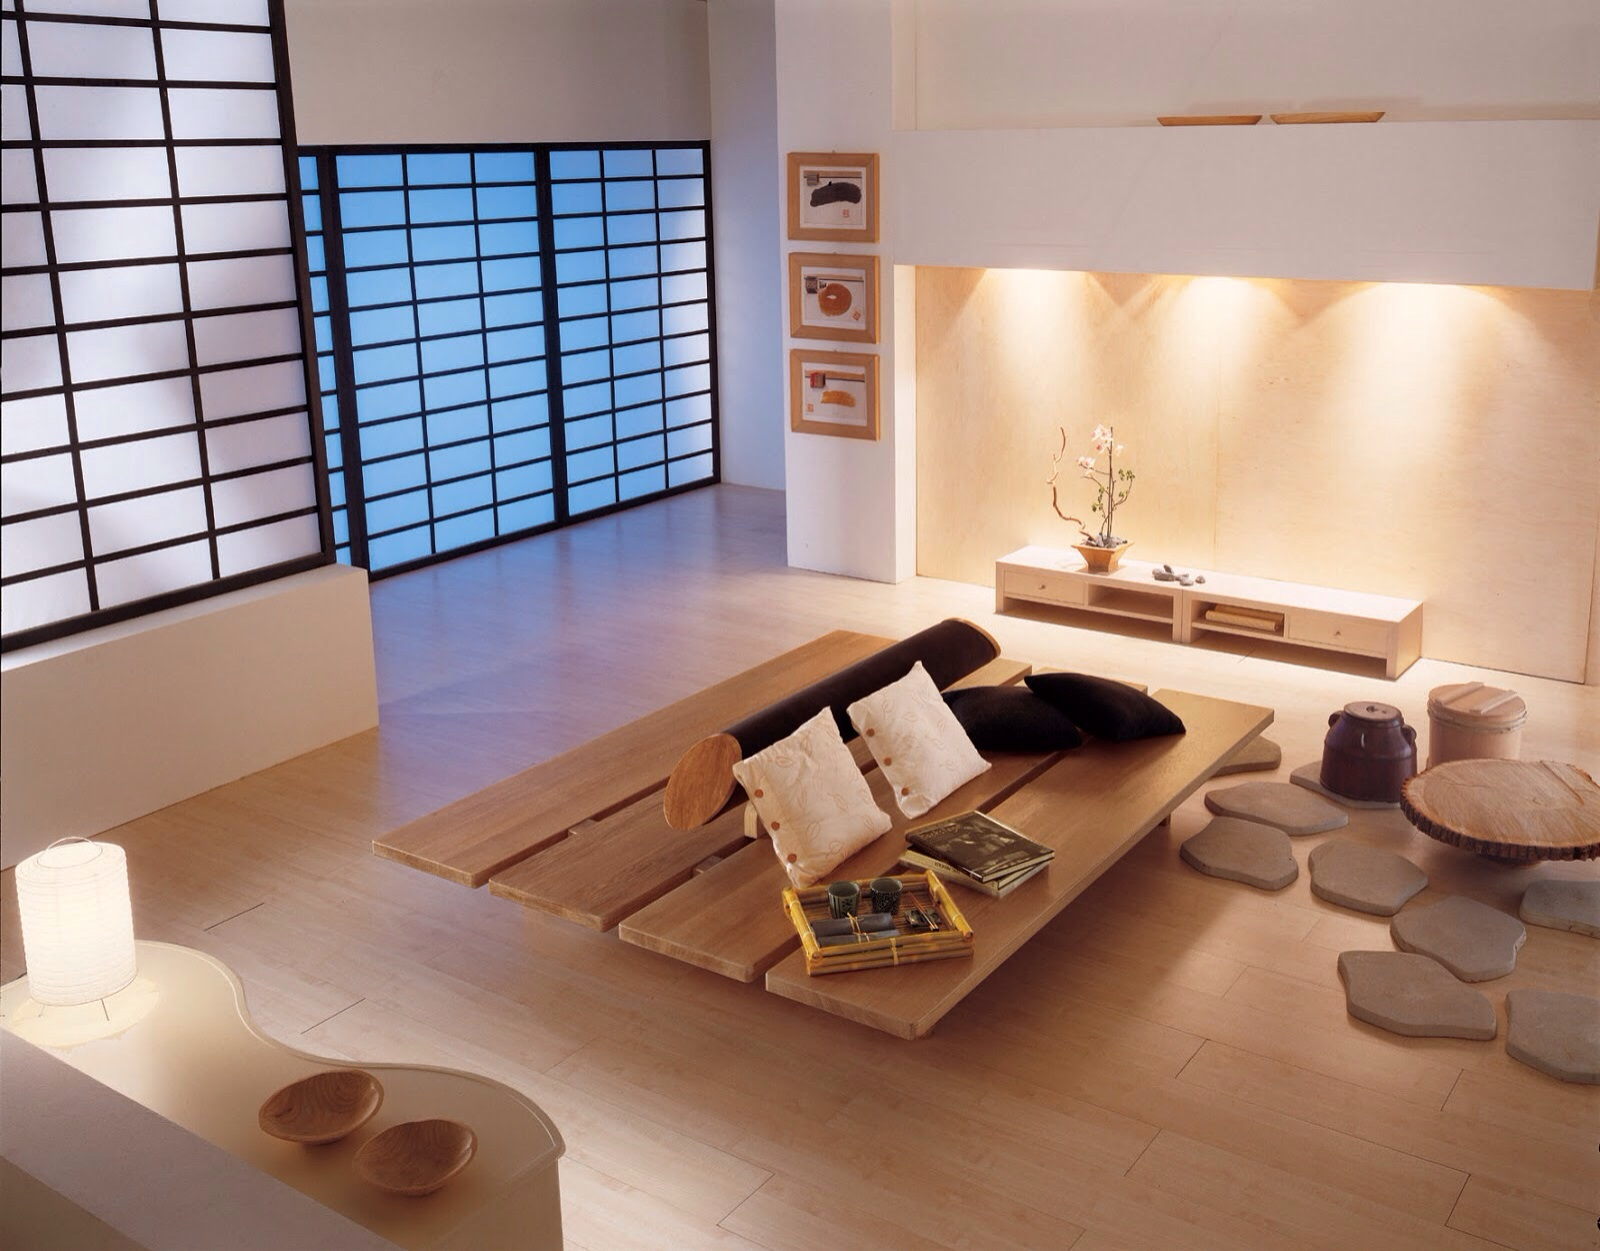 & Zen Inspired Interior Design